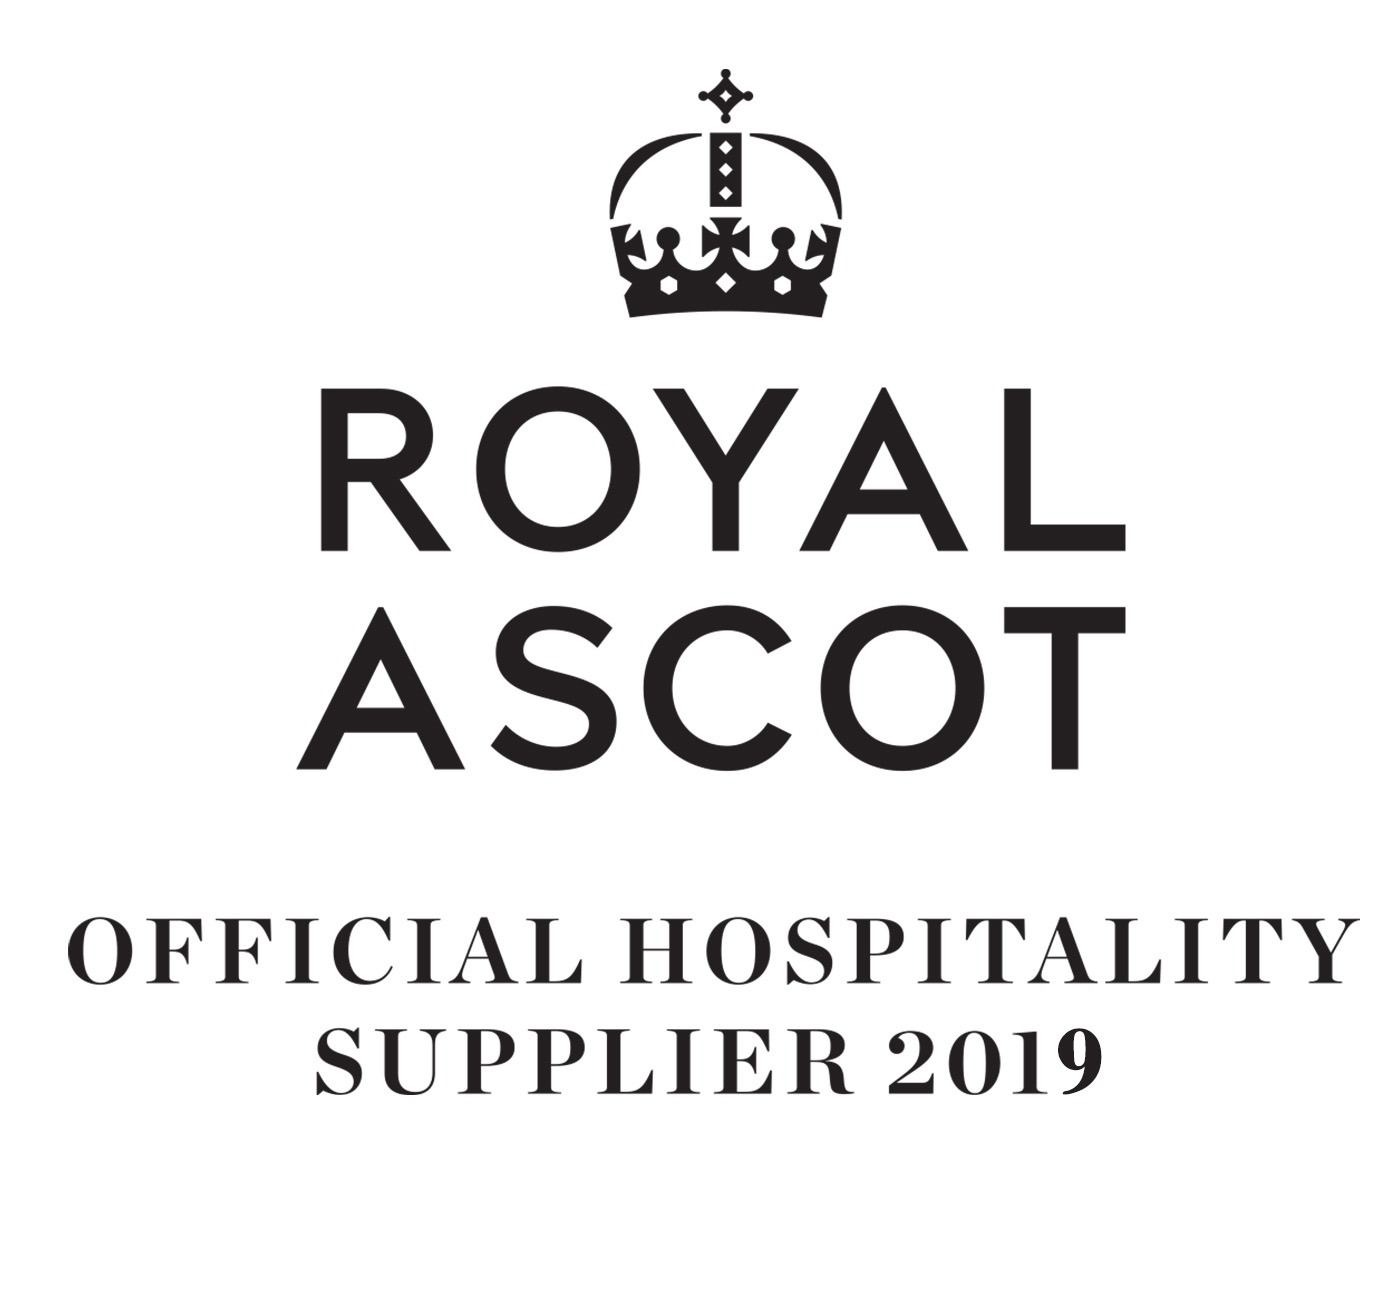 Royal Ascot Hospitality Logo - Horse Racing at Ascot Racecourse 2019